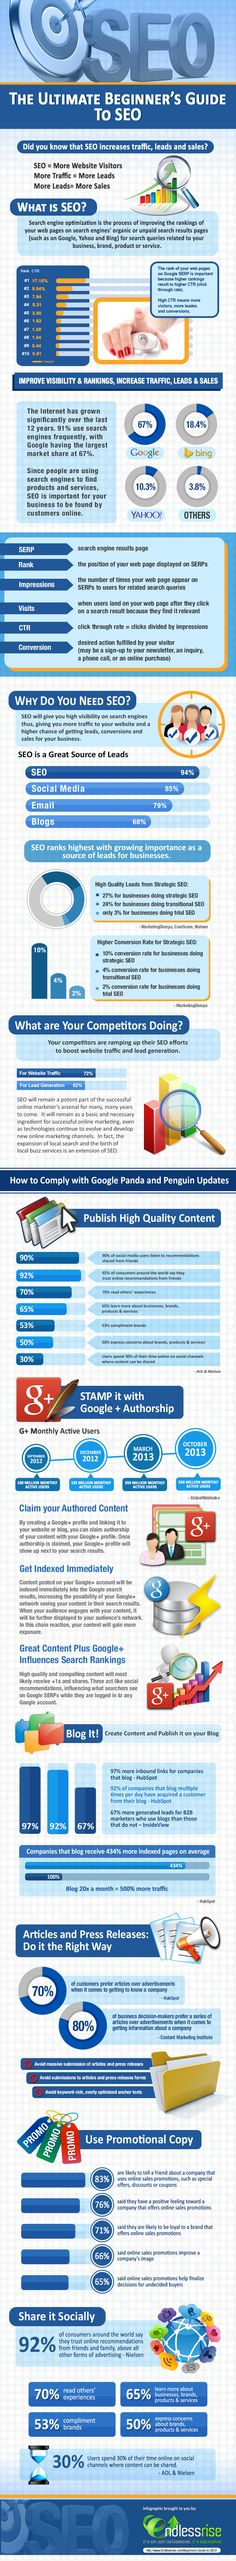 Infographic: The Ultimate Beginner's Guide to SEO #infographic